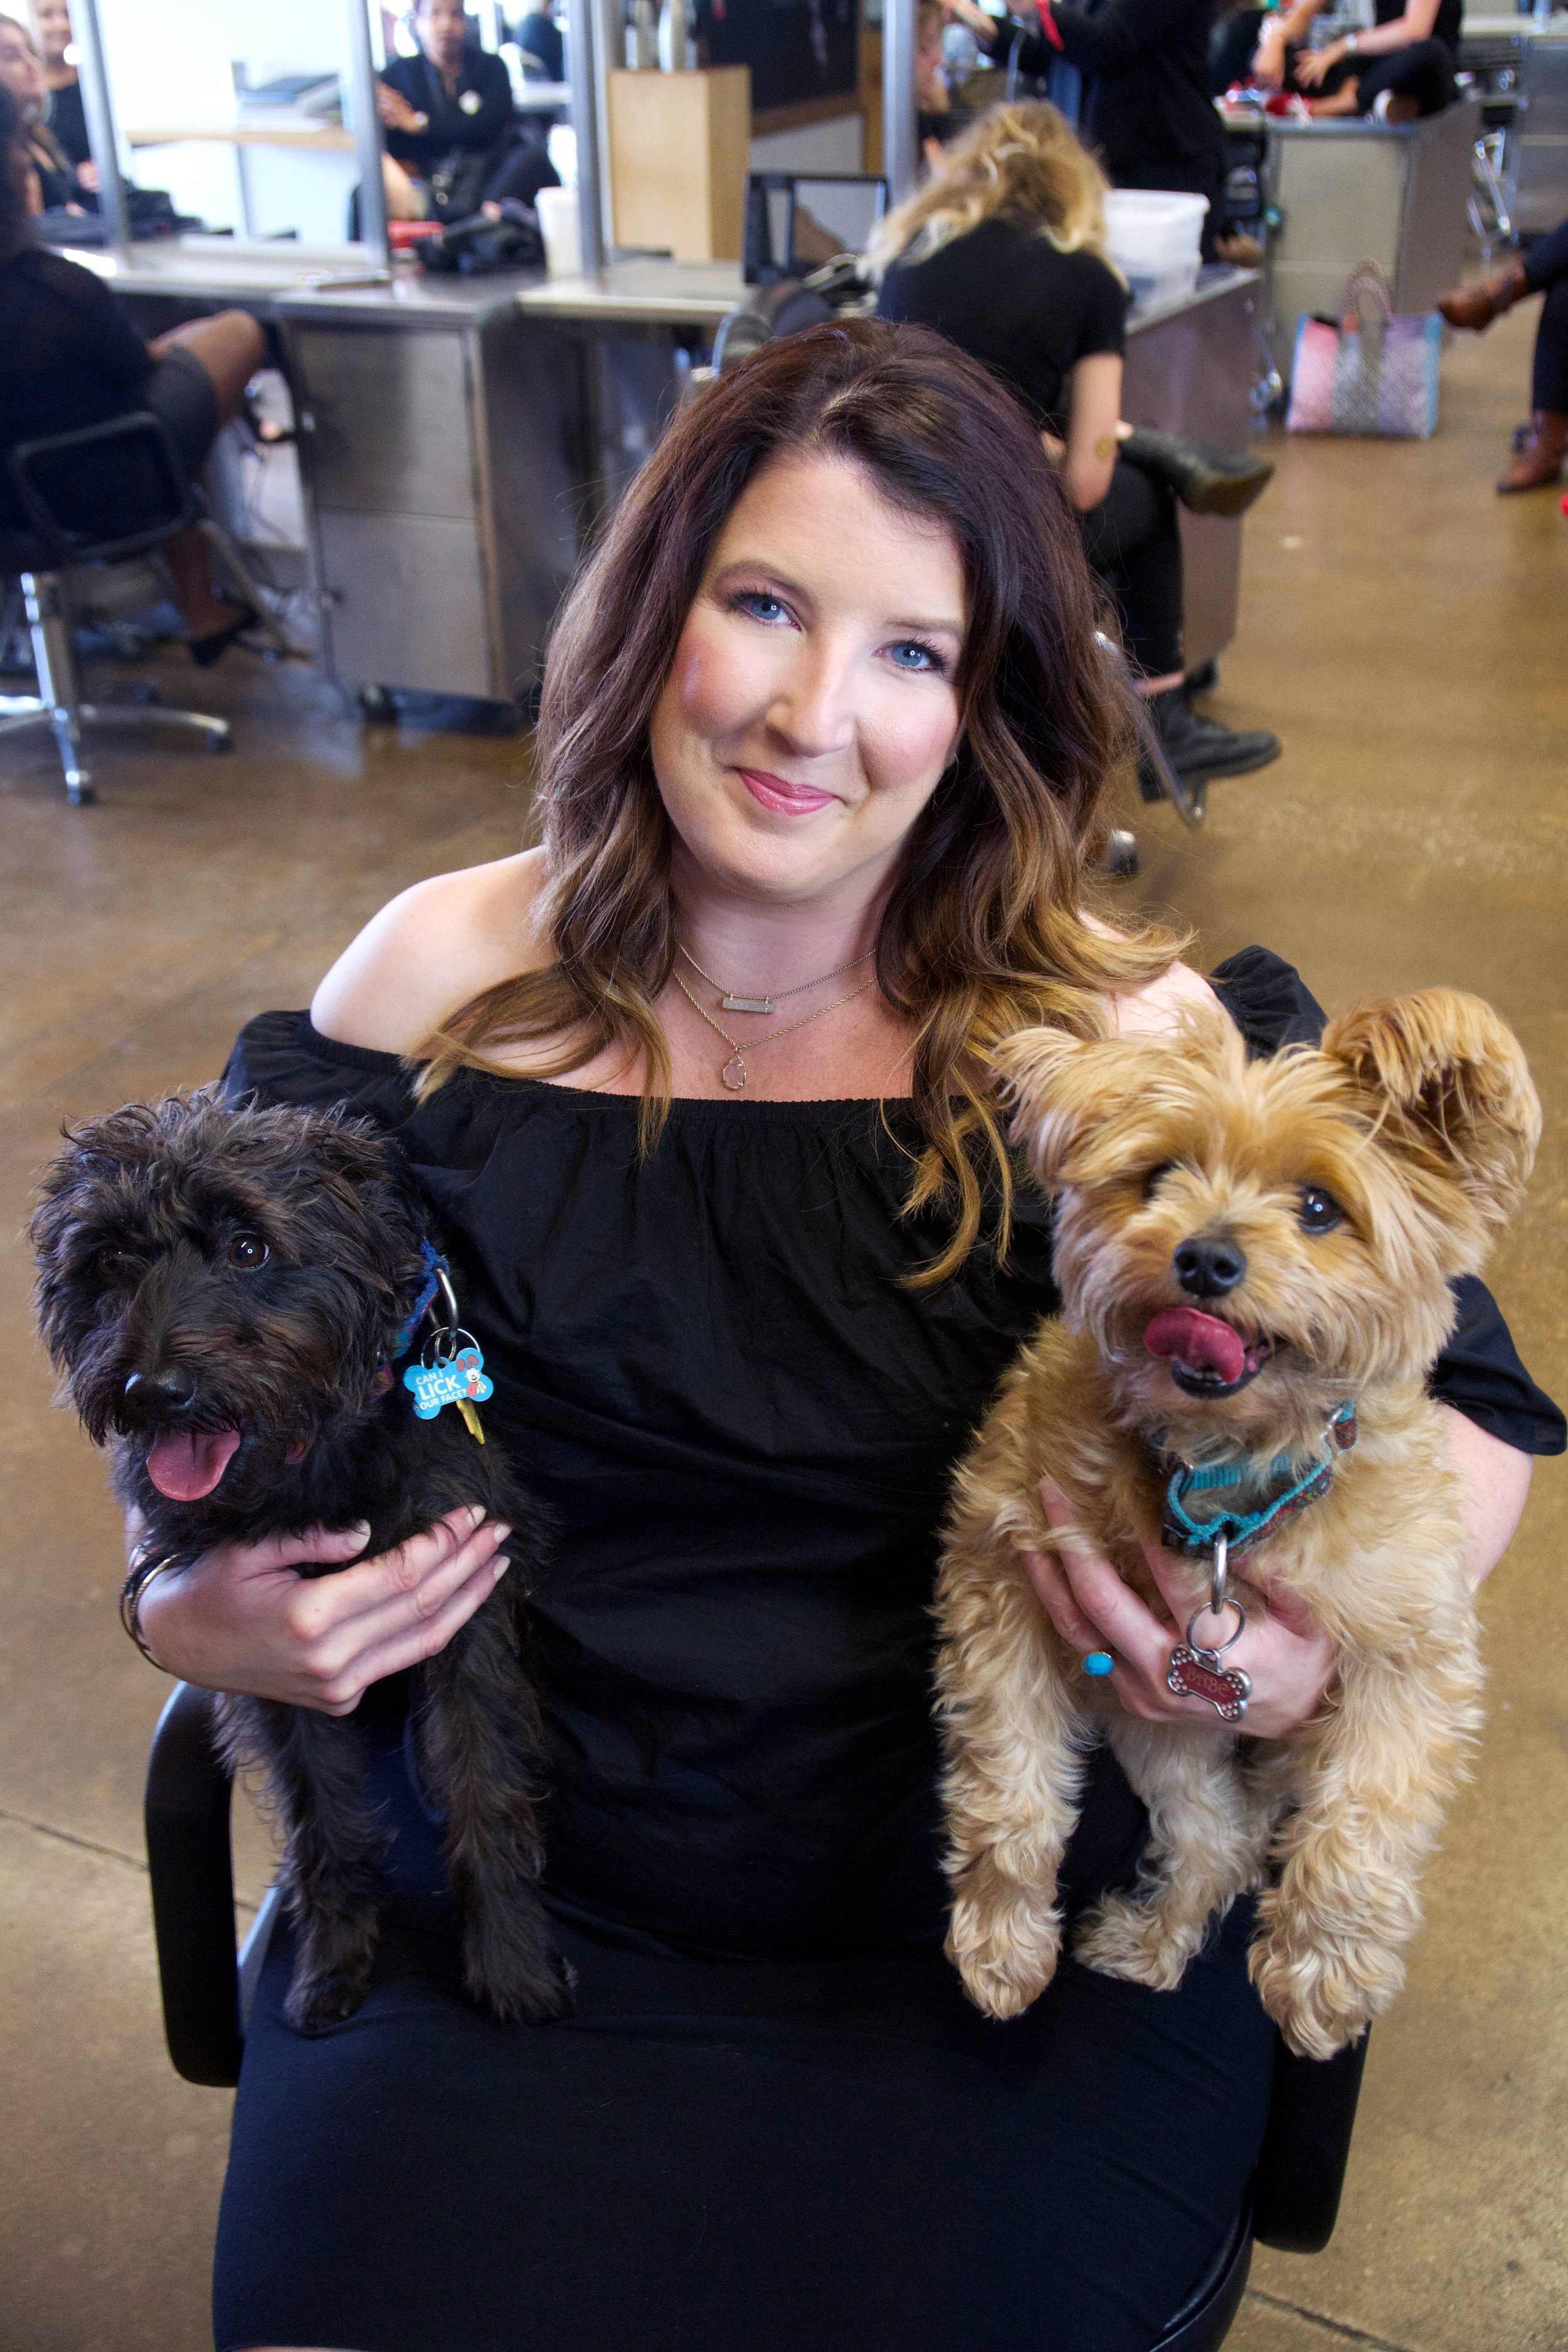 Angela and her two dogs: Babe and Harley!